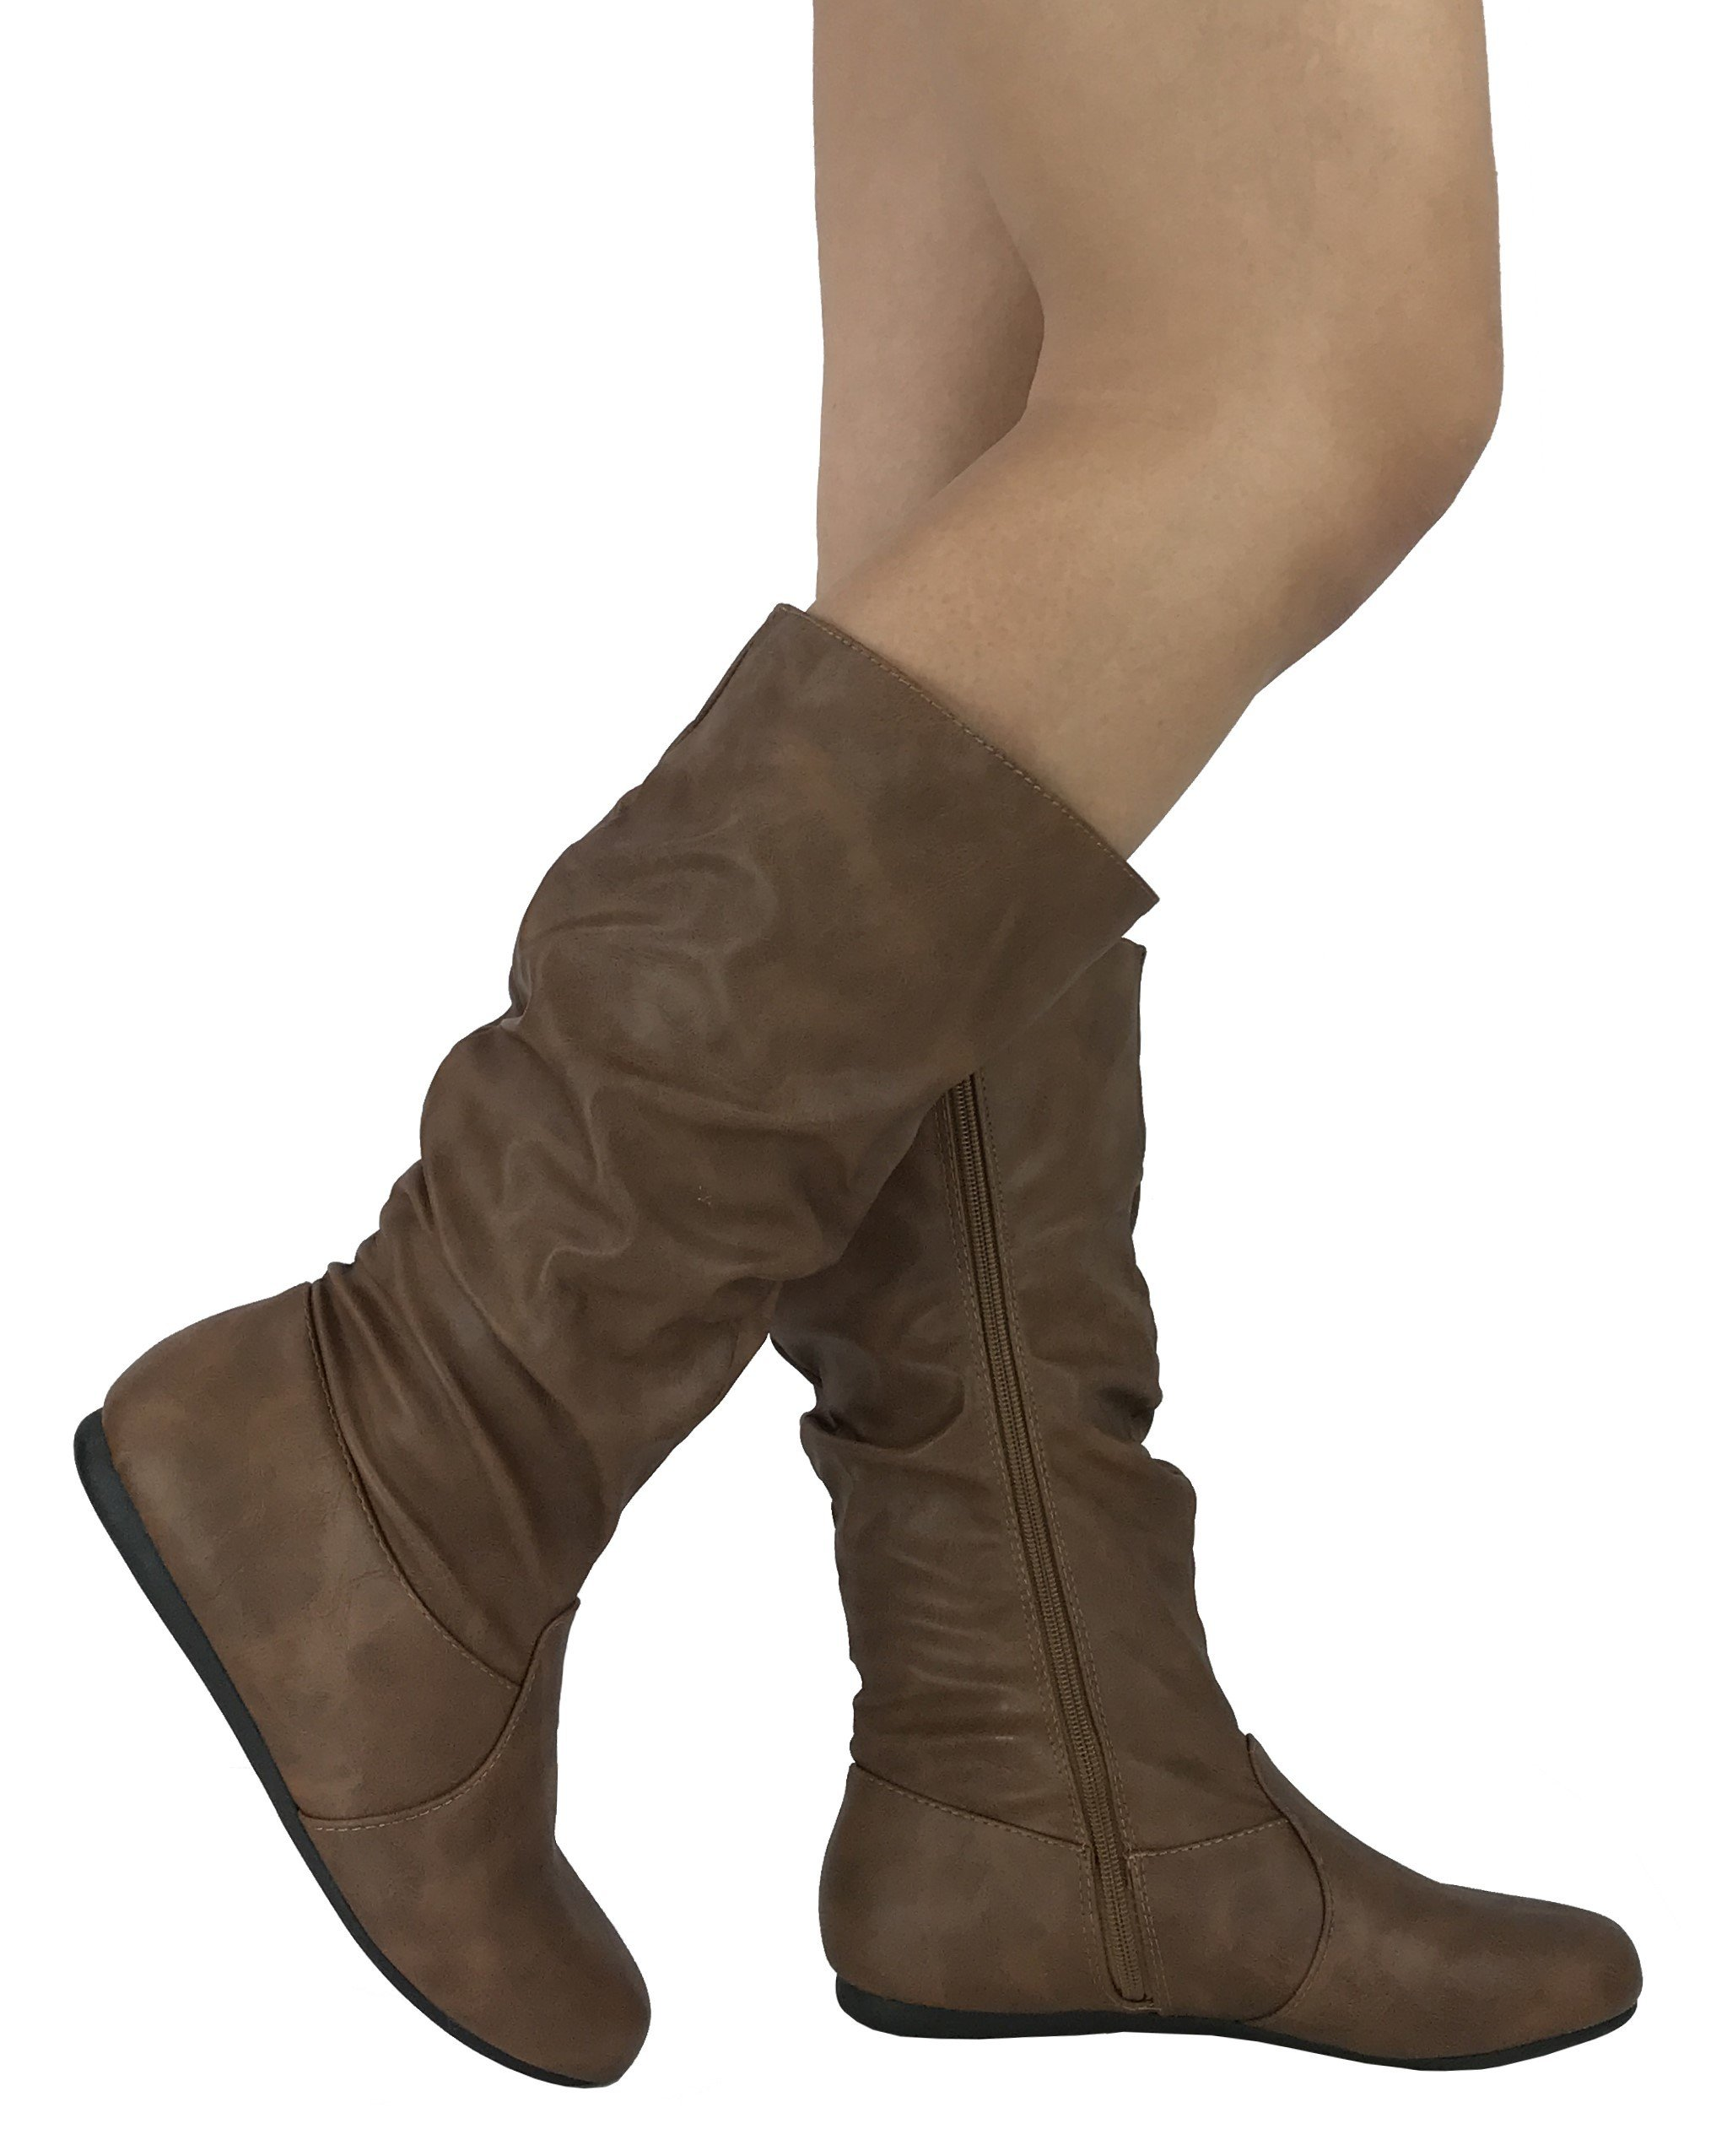 Wells Collection Womens Wonda Boots Soft Slouchy Flat to Low Heel Under Knee High, Tan PU, 9